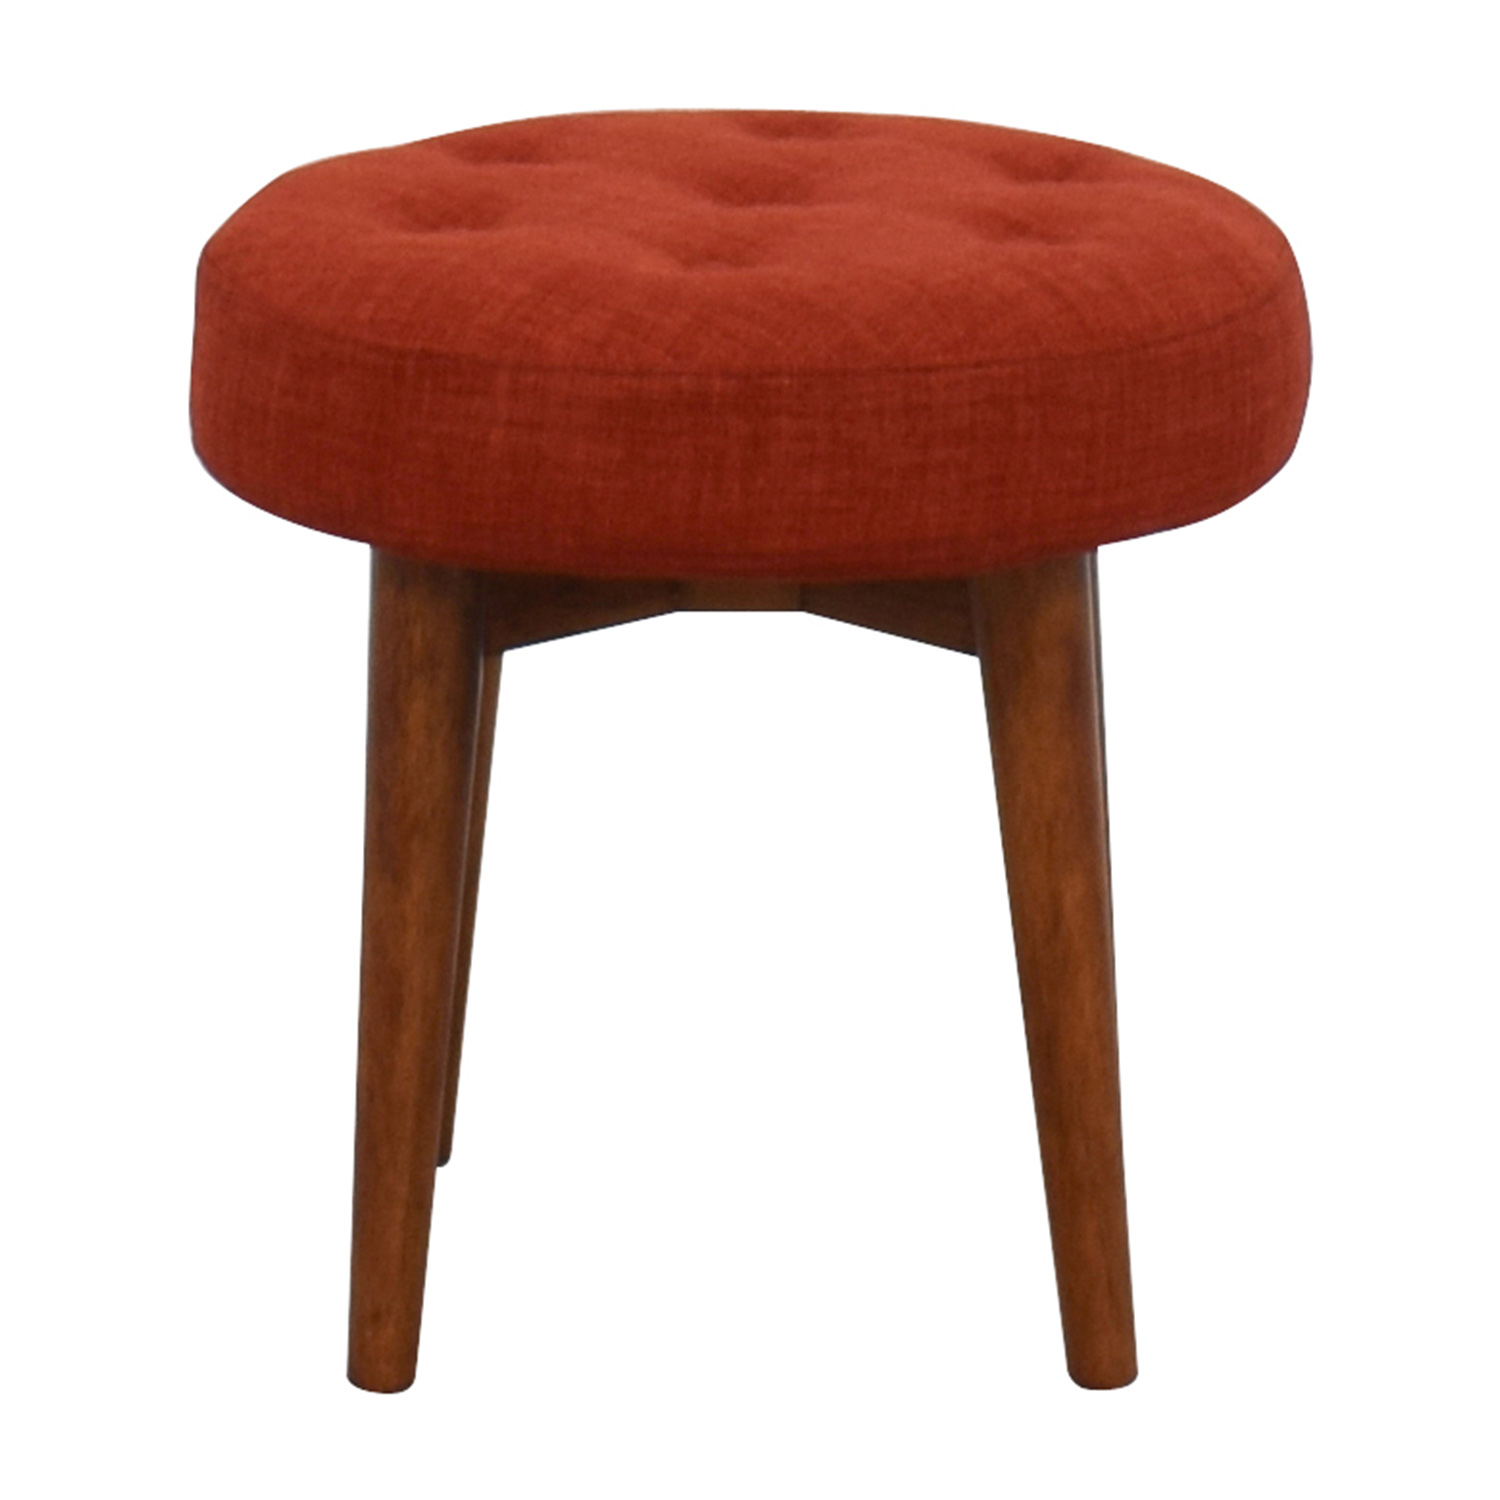 West Elm West Elm Mid-Century Stool second hand